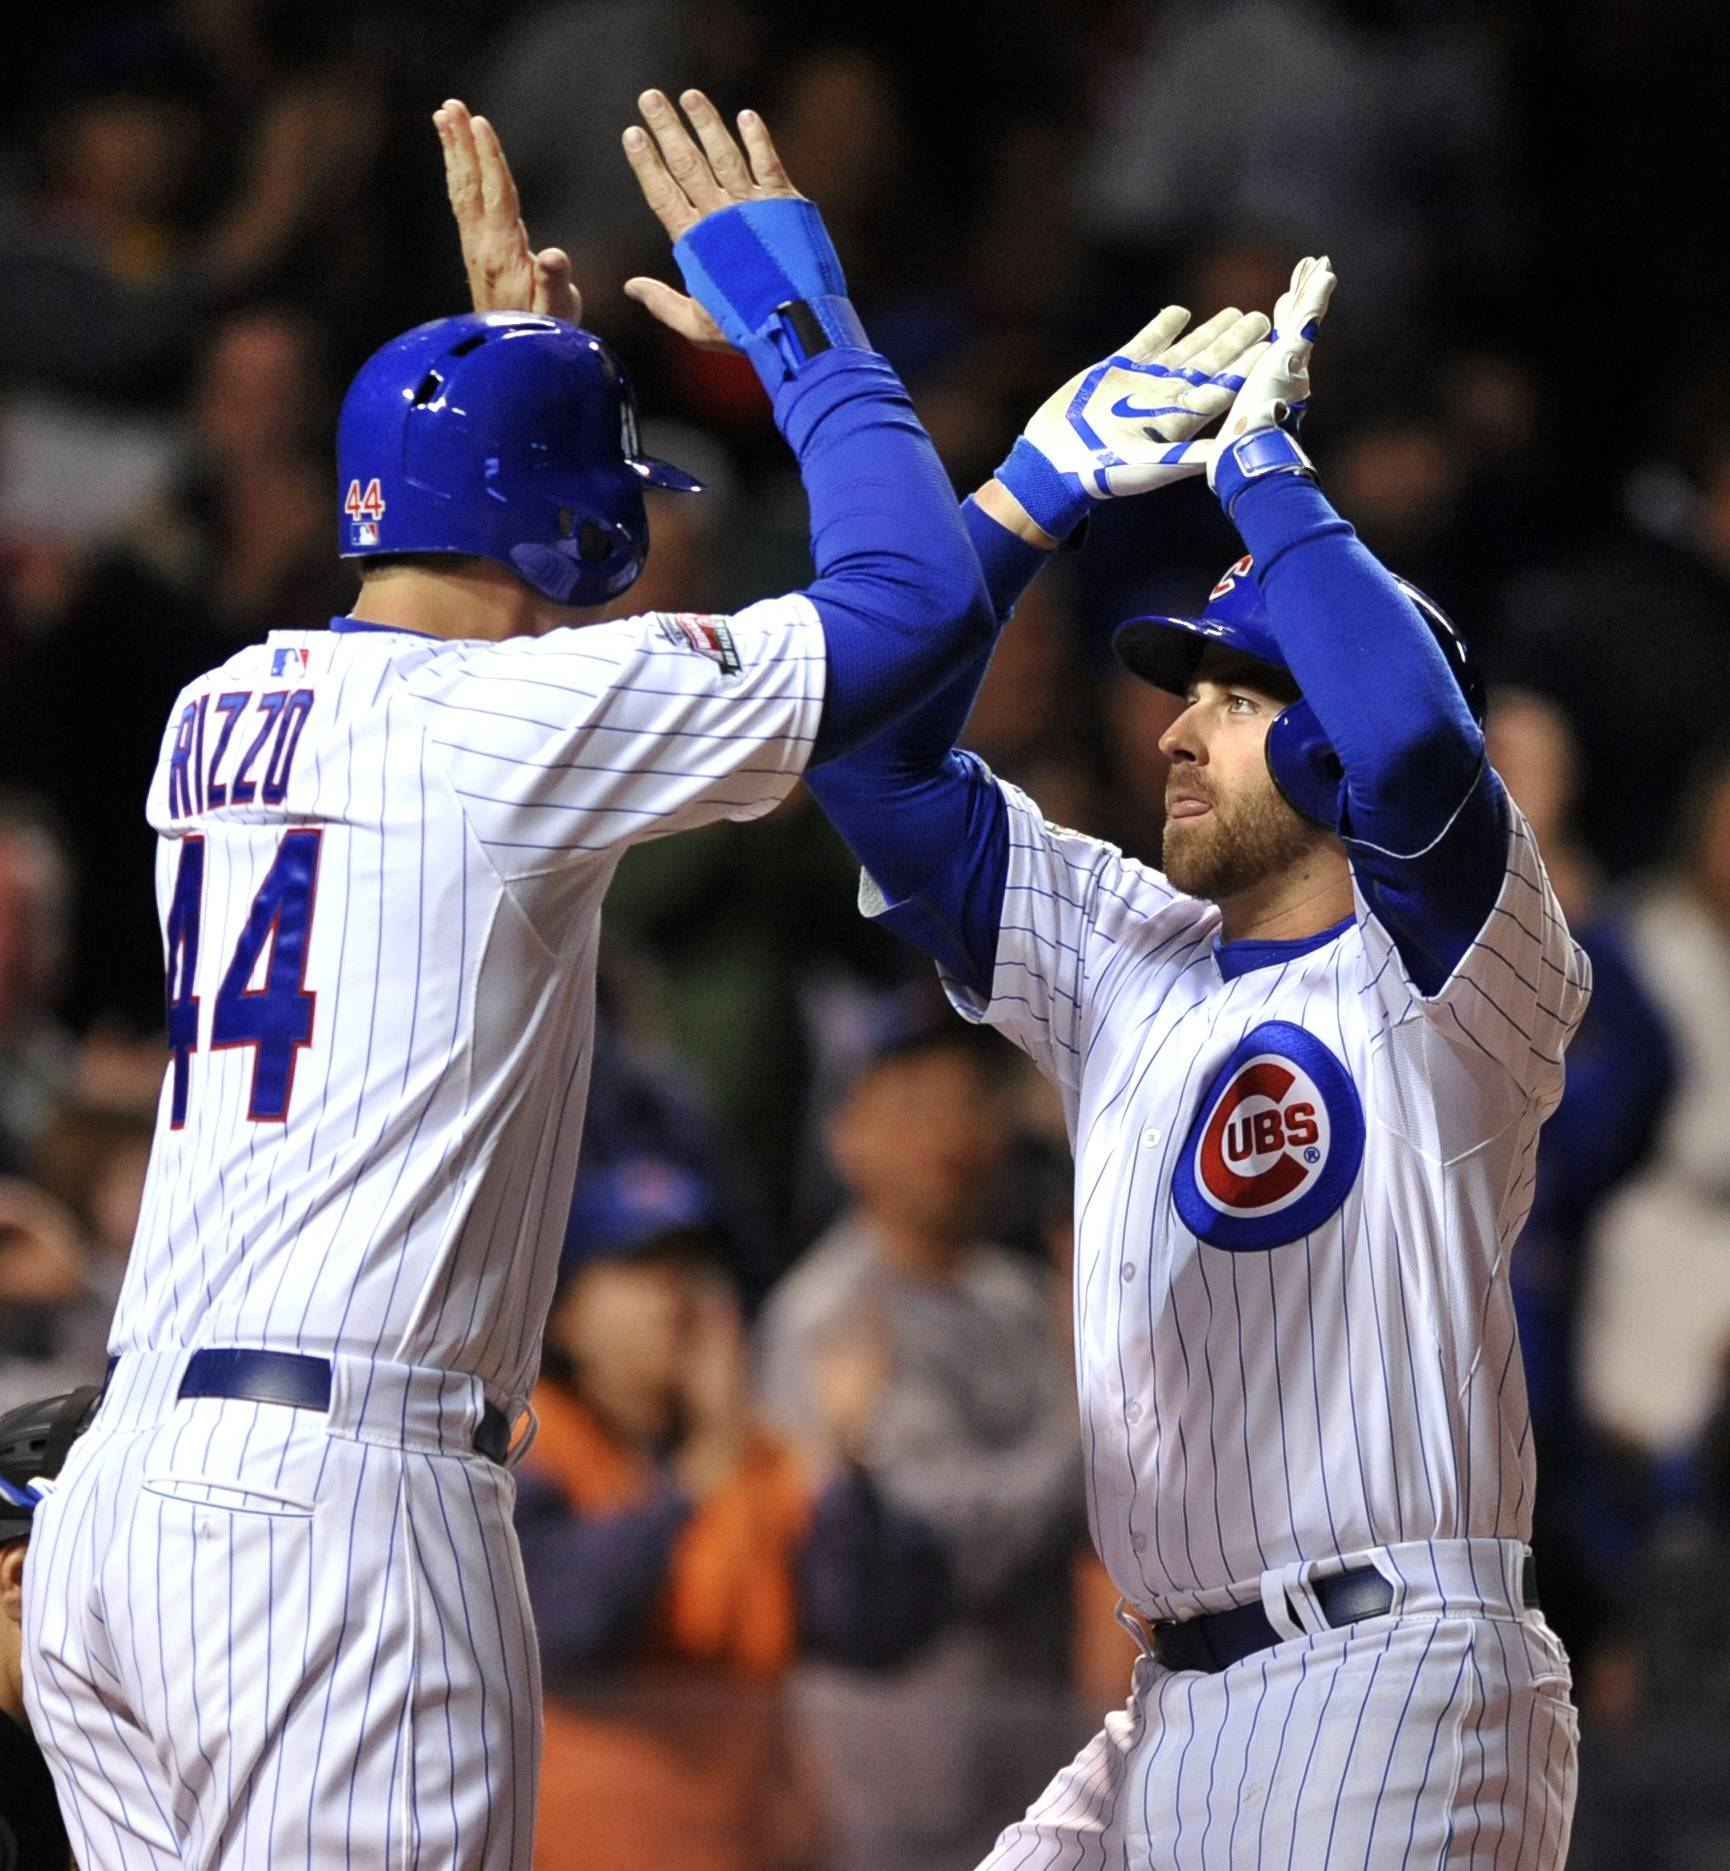 Chicago Cubs' Mike Olt right, celebrates with Anthony Rizzo at home plate after hitting a two-run home run during the fifth inning of a baseball game against the Pittsburgh Pirates in Chicago, Wednesday, April 9, 2014.